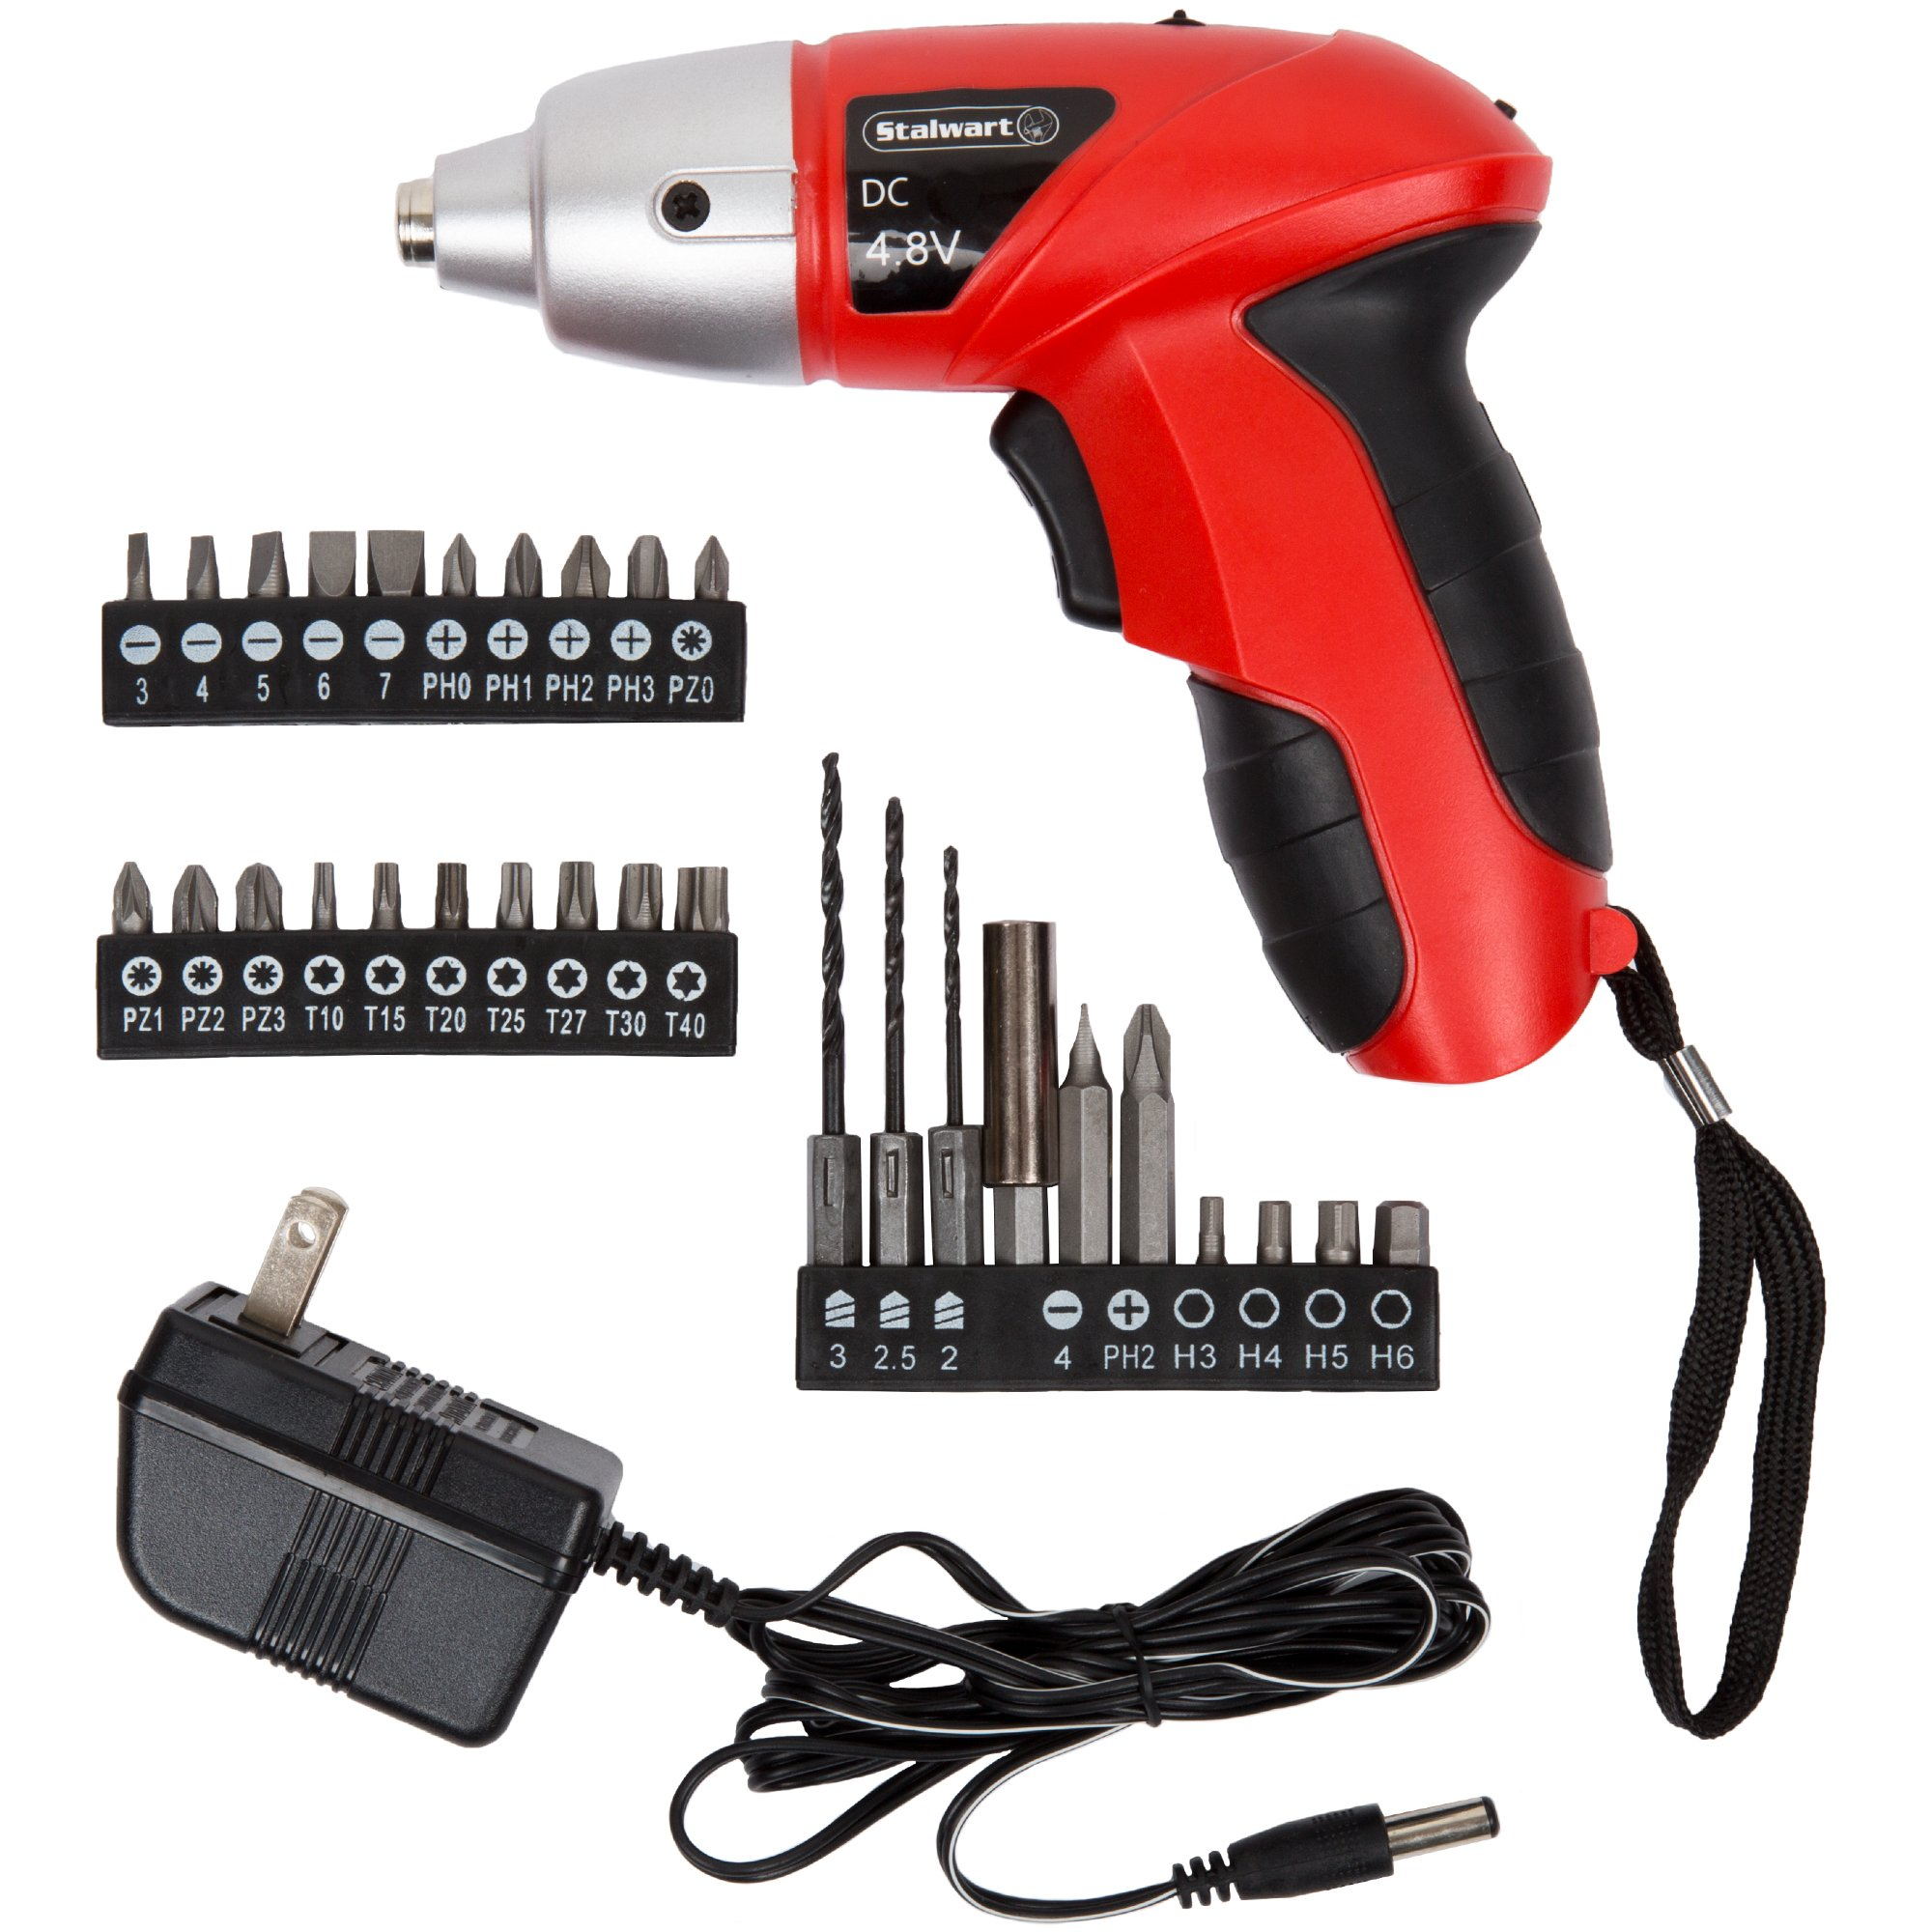 Trademark 75-60100 Hawk 4.8V Cordless Screwdriver with Light